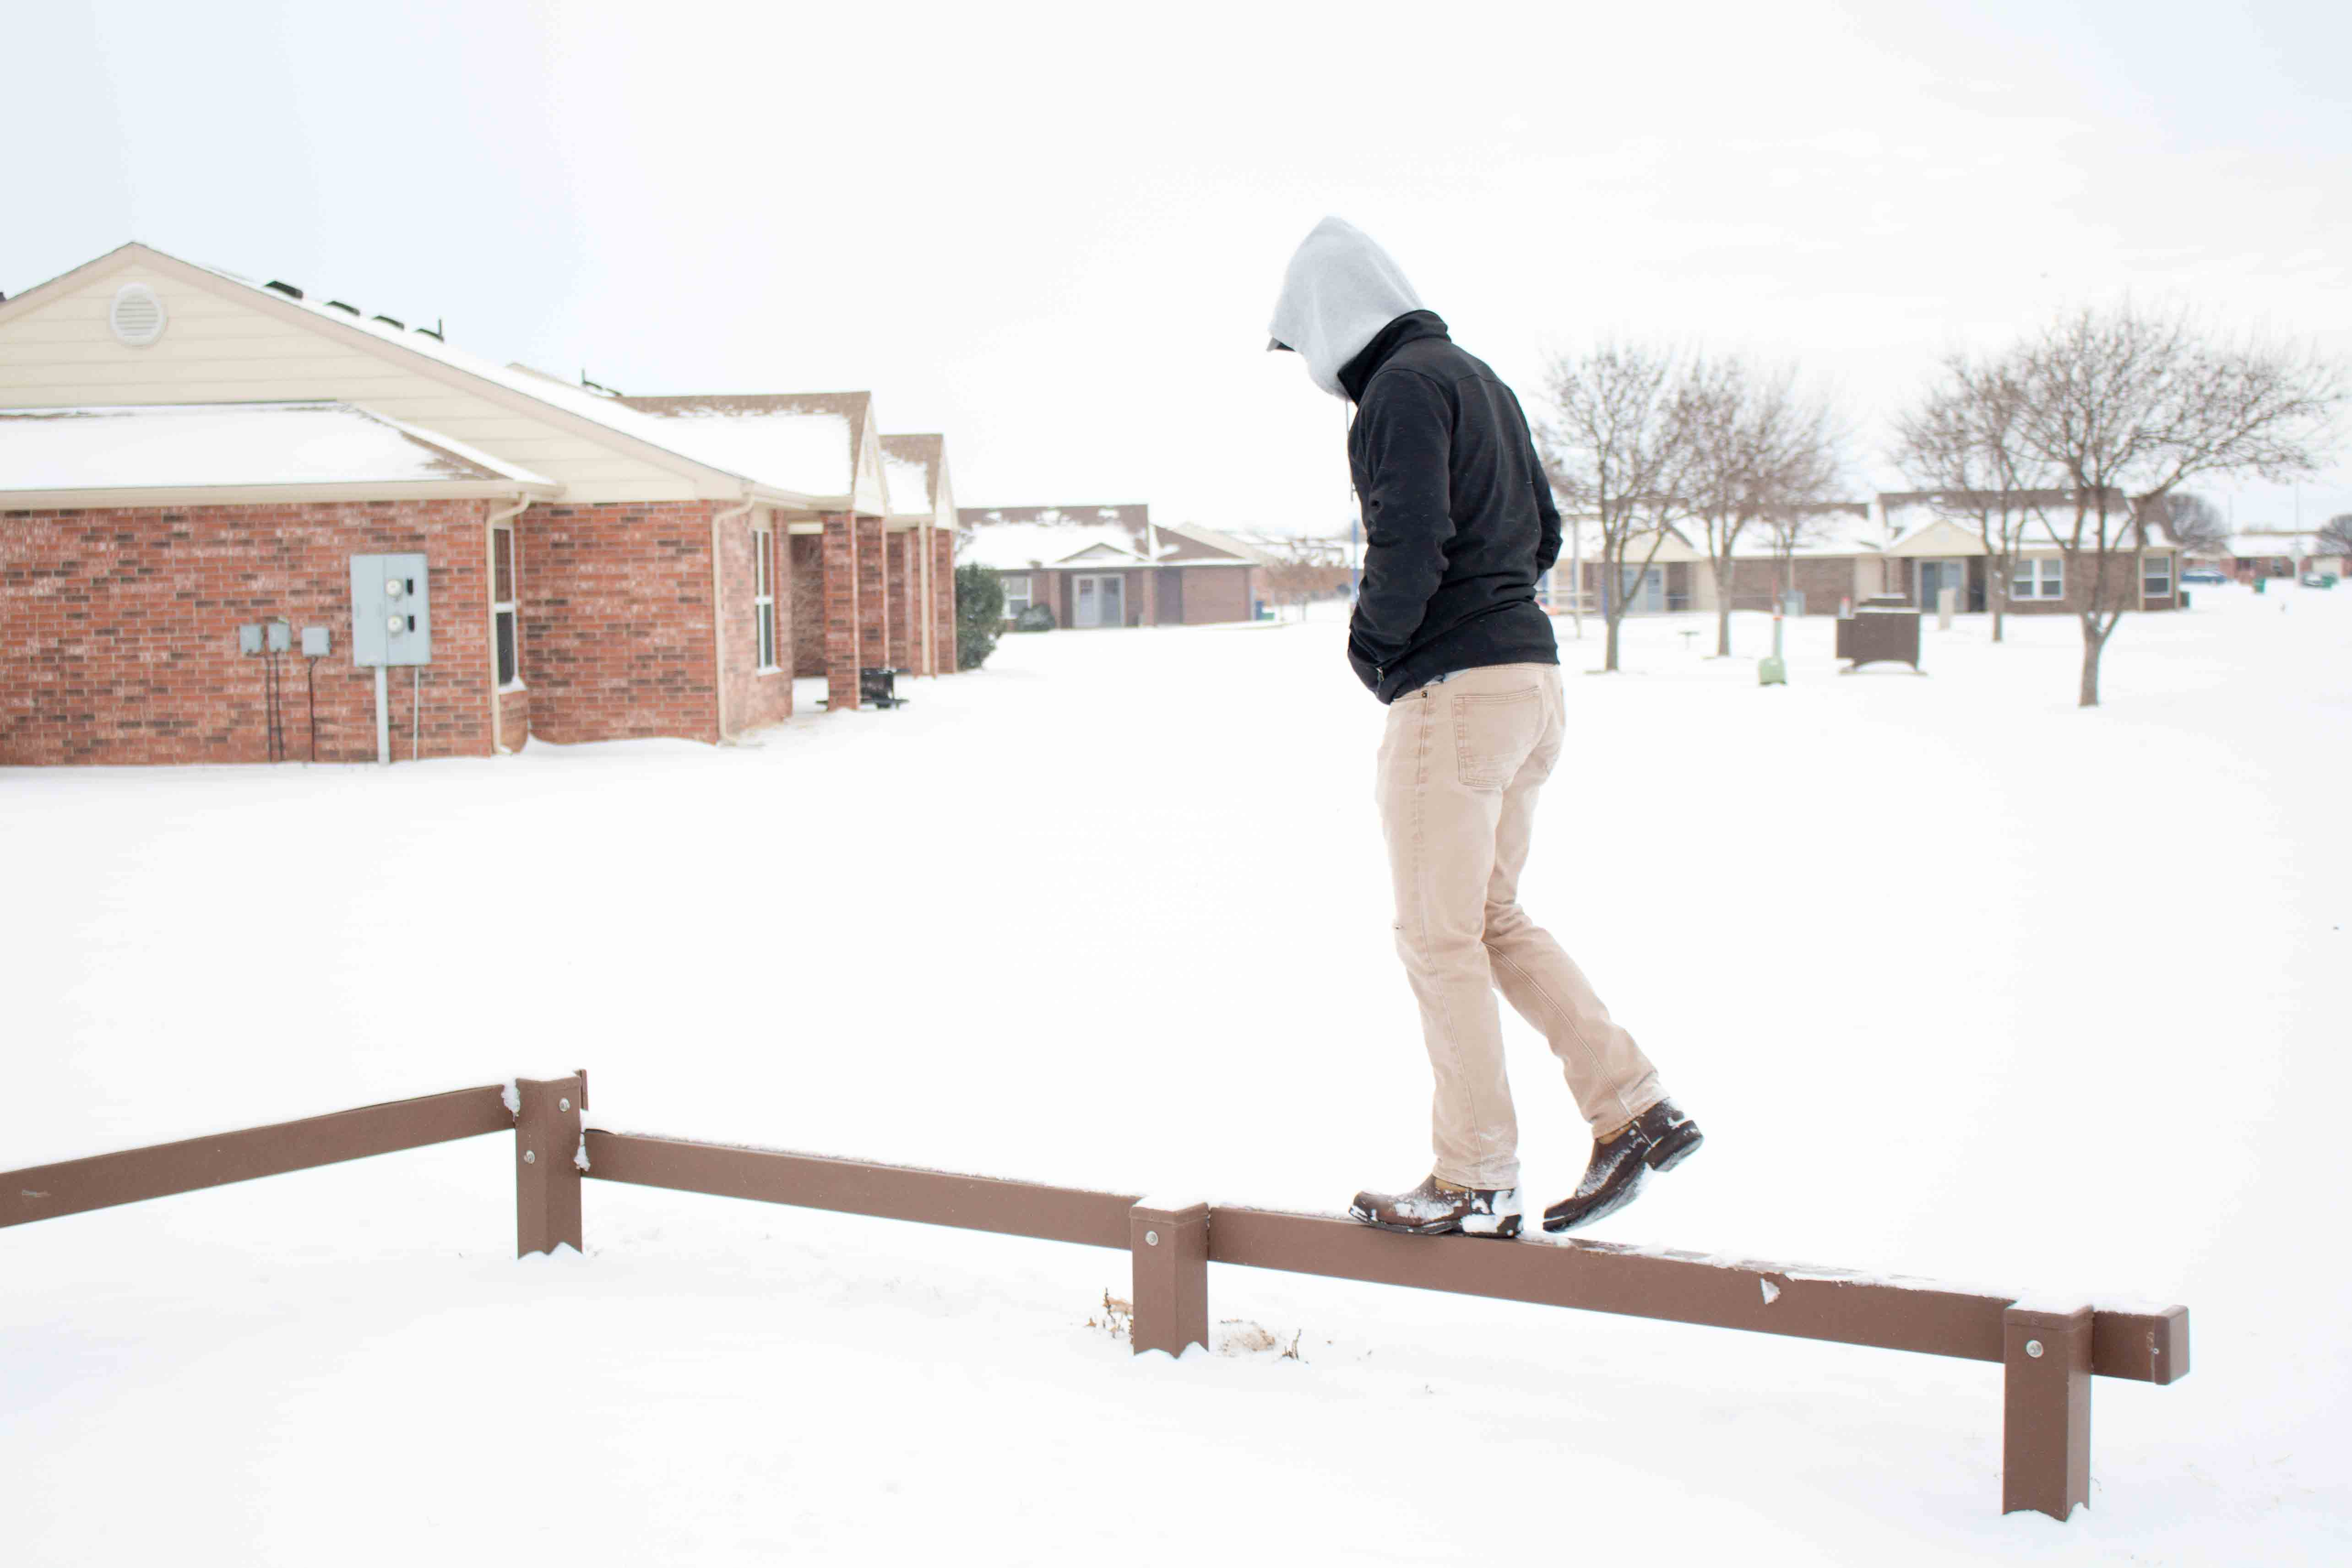 Snow days are the best days!